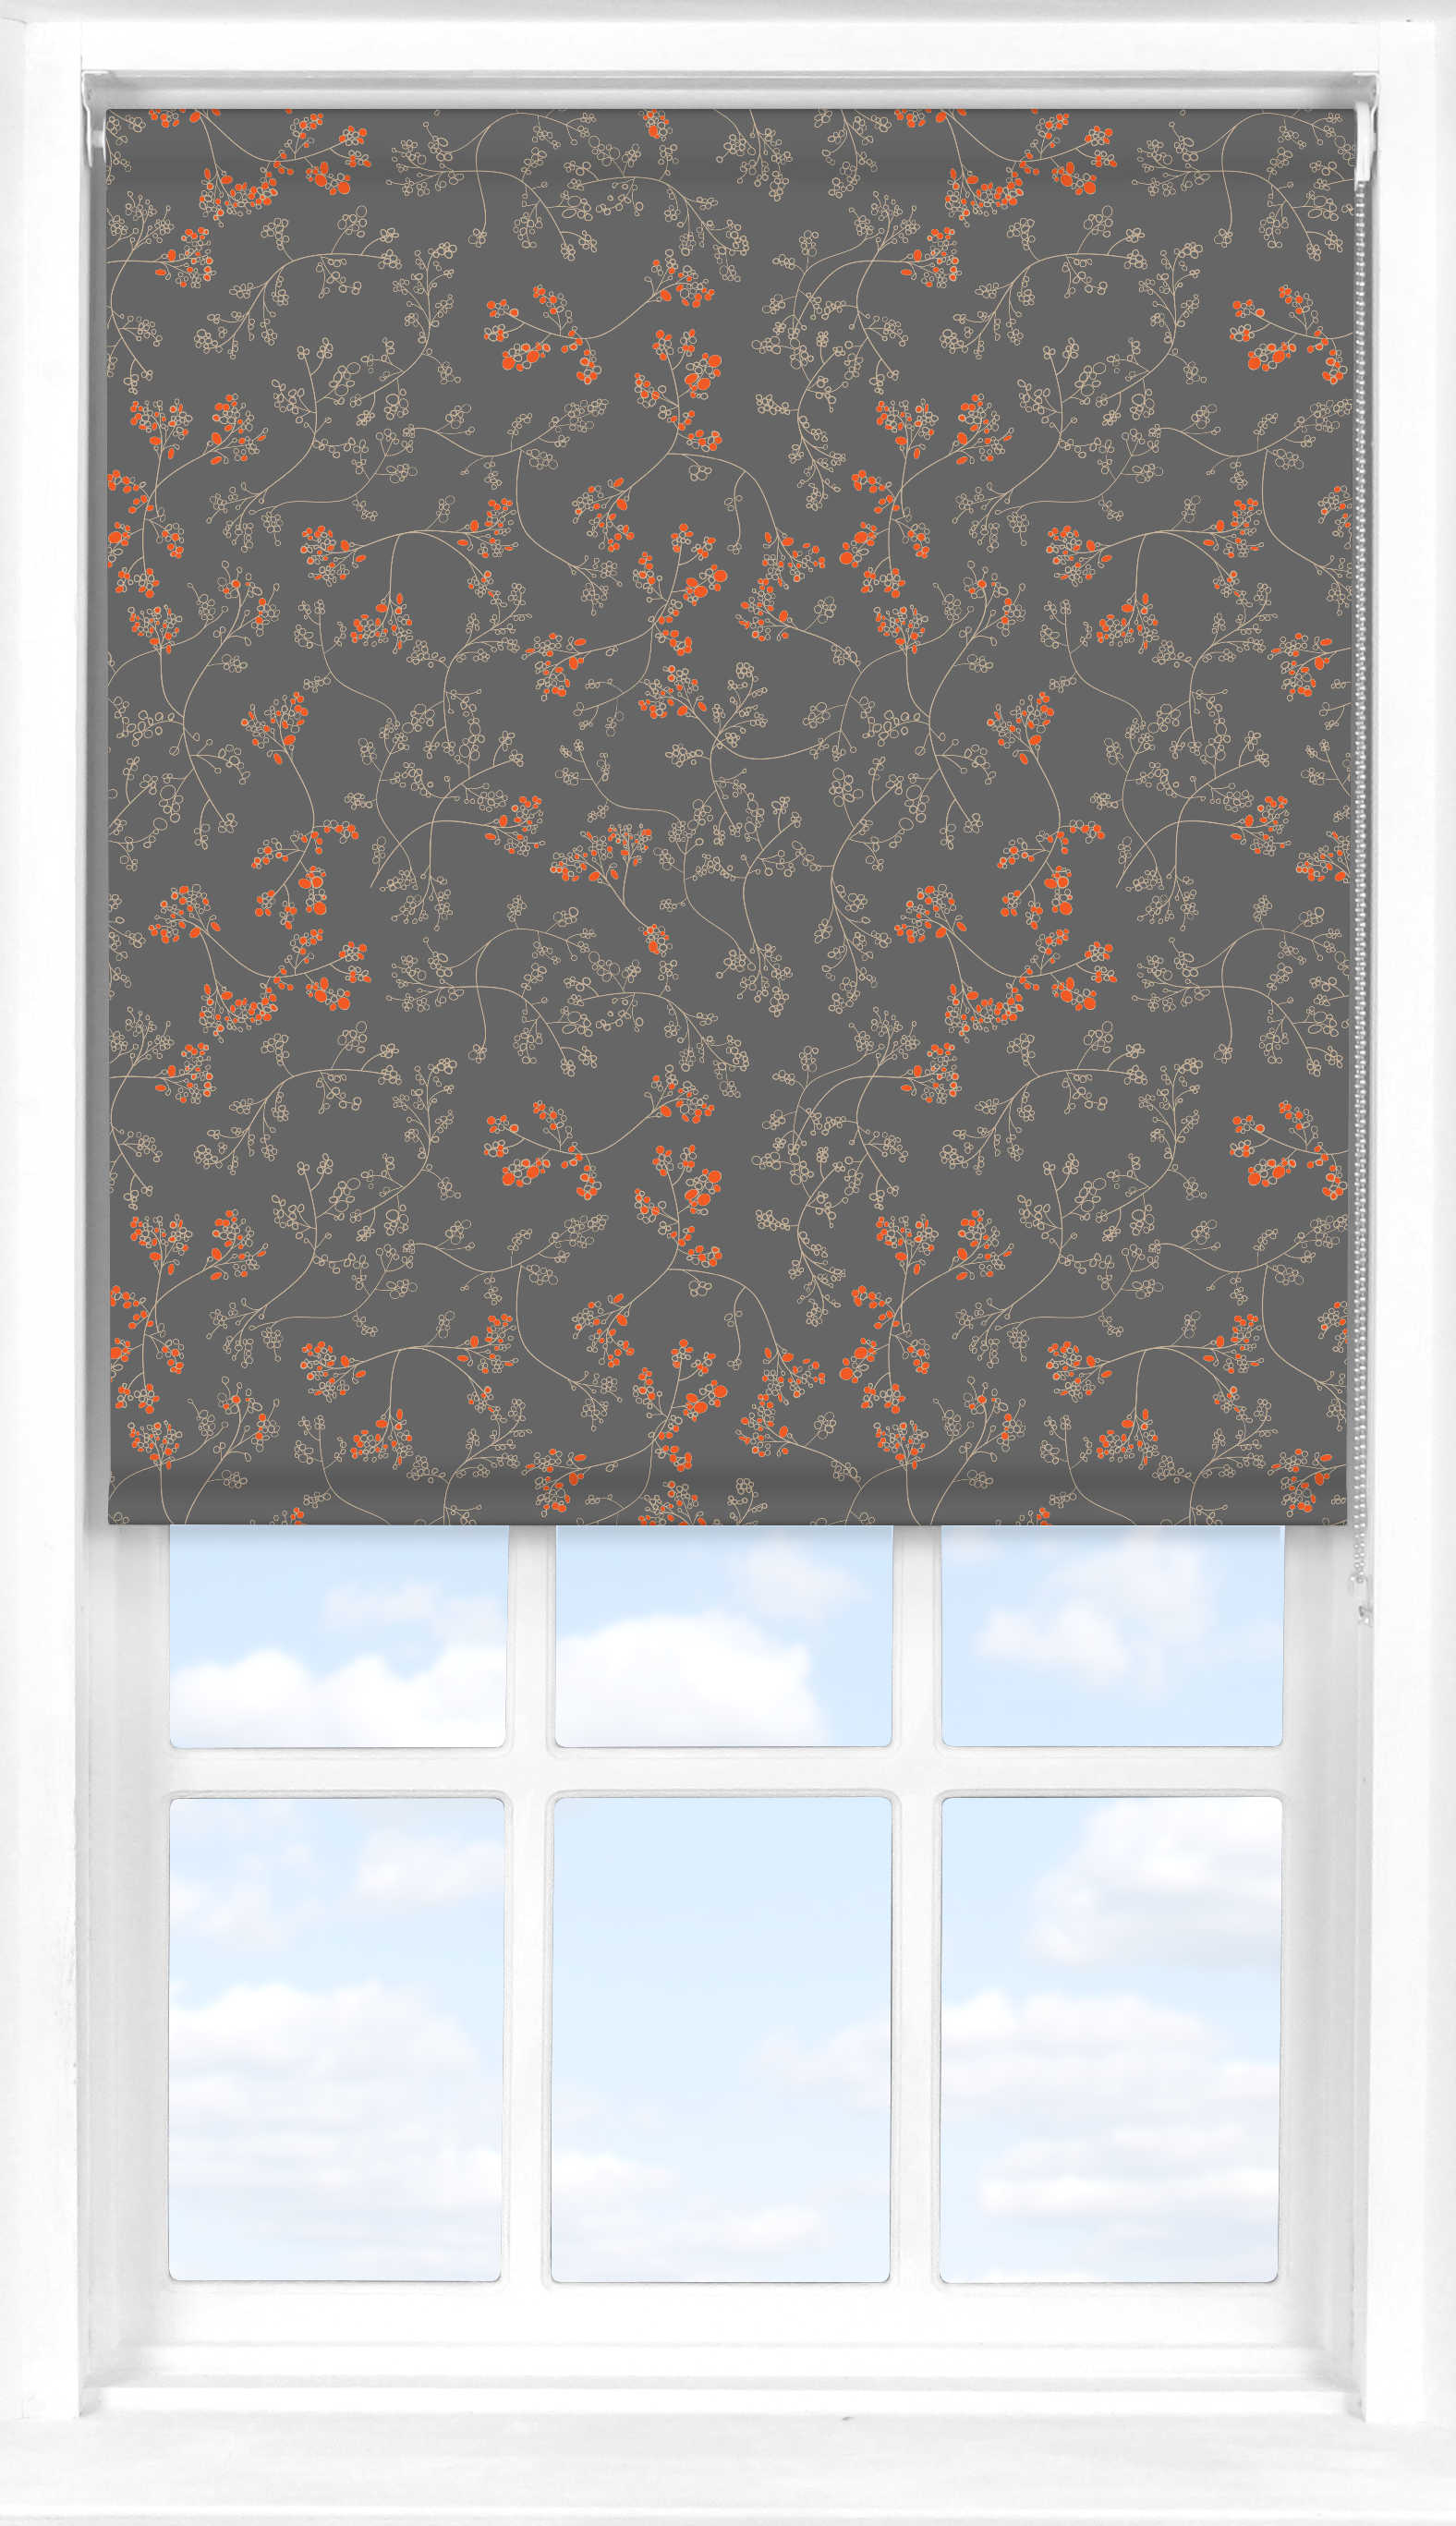 Motorised Roller Blind in Meandering Buds Orange Blackout